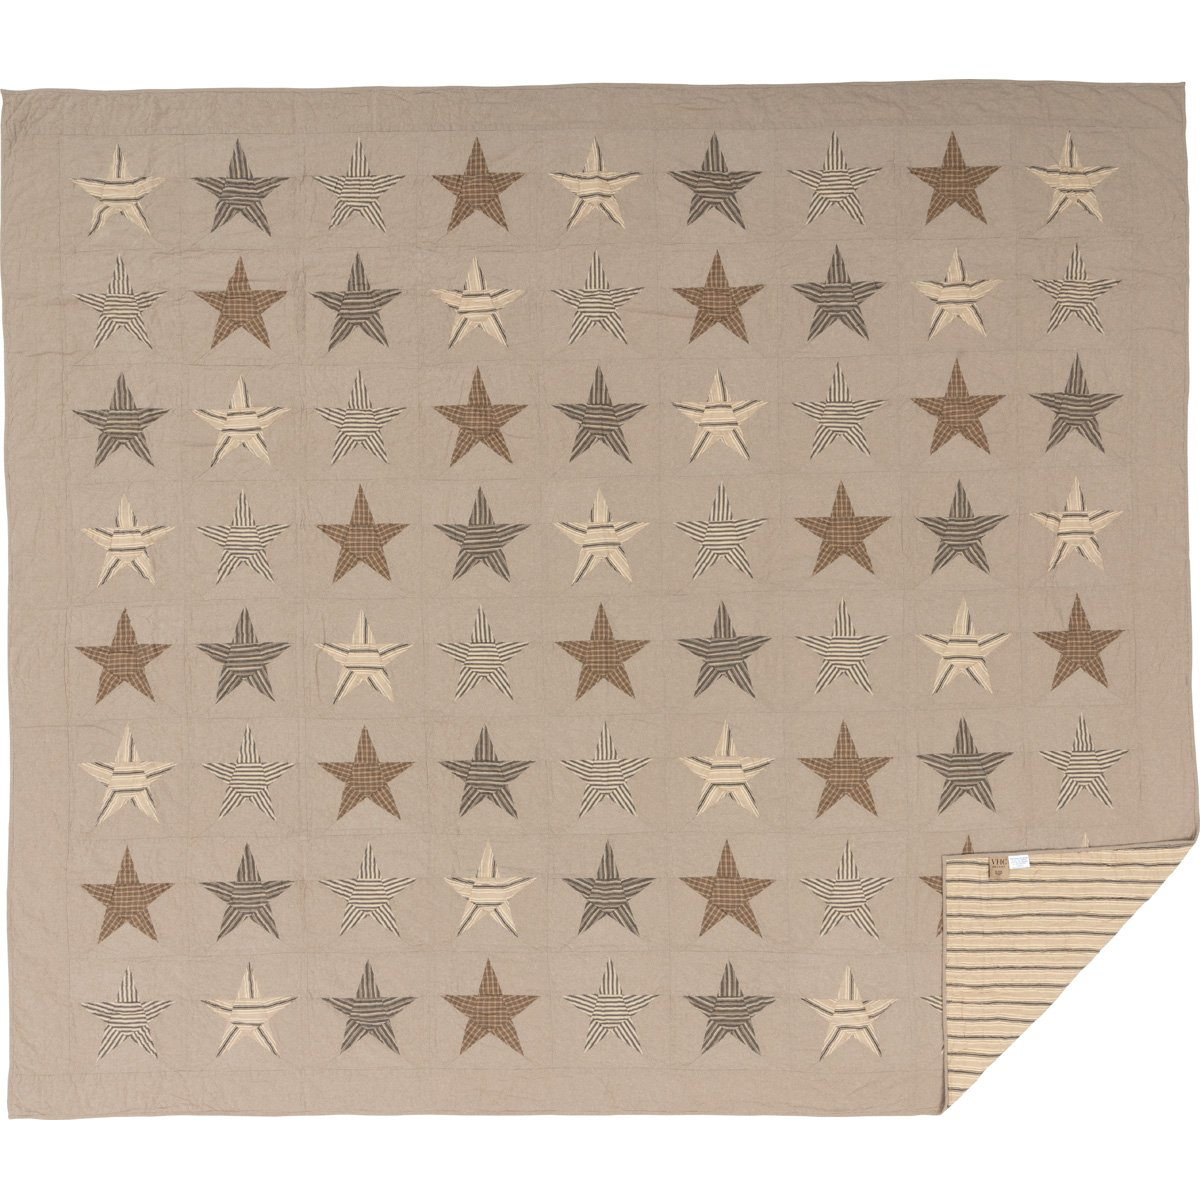 Tan 46276 VHC Brands Farmhouse Bedding Sawyer Mill Star Charcoal Quilt King